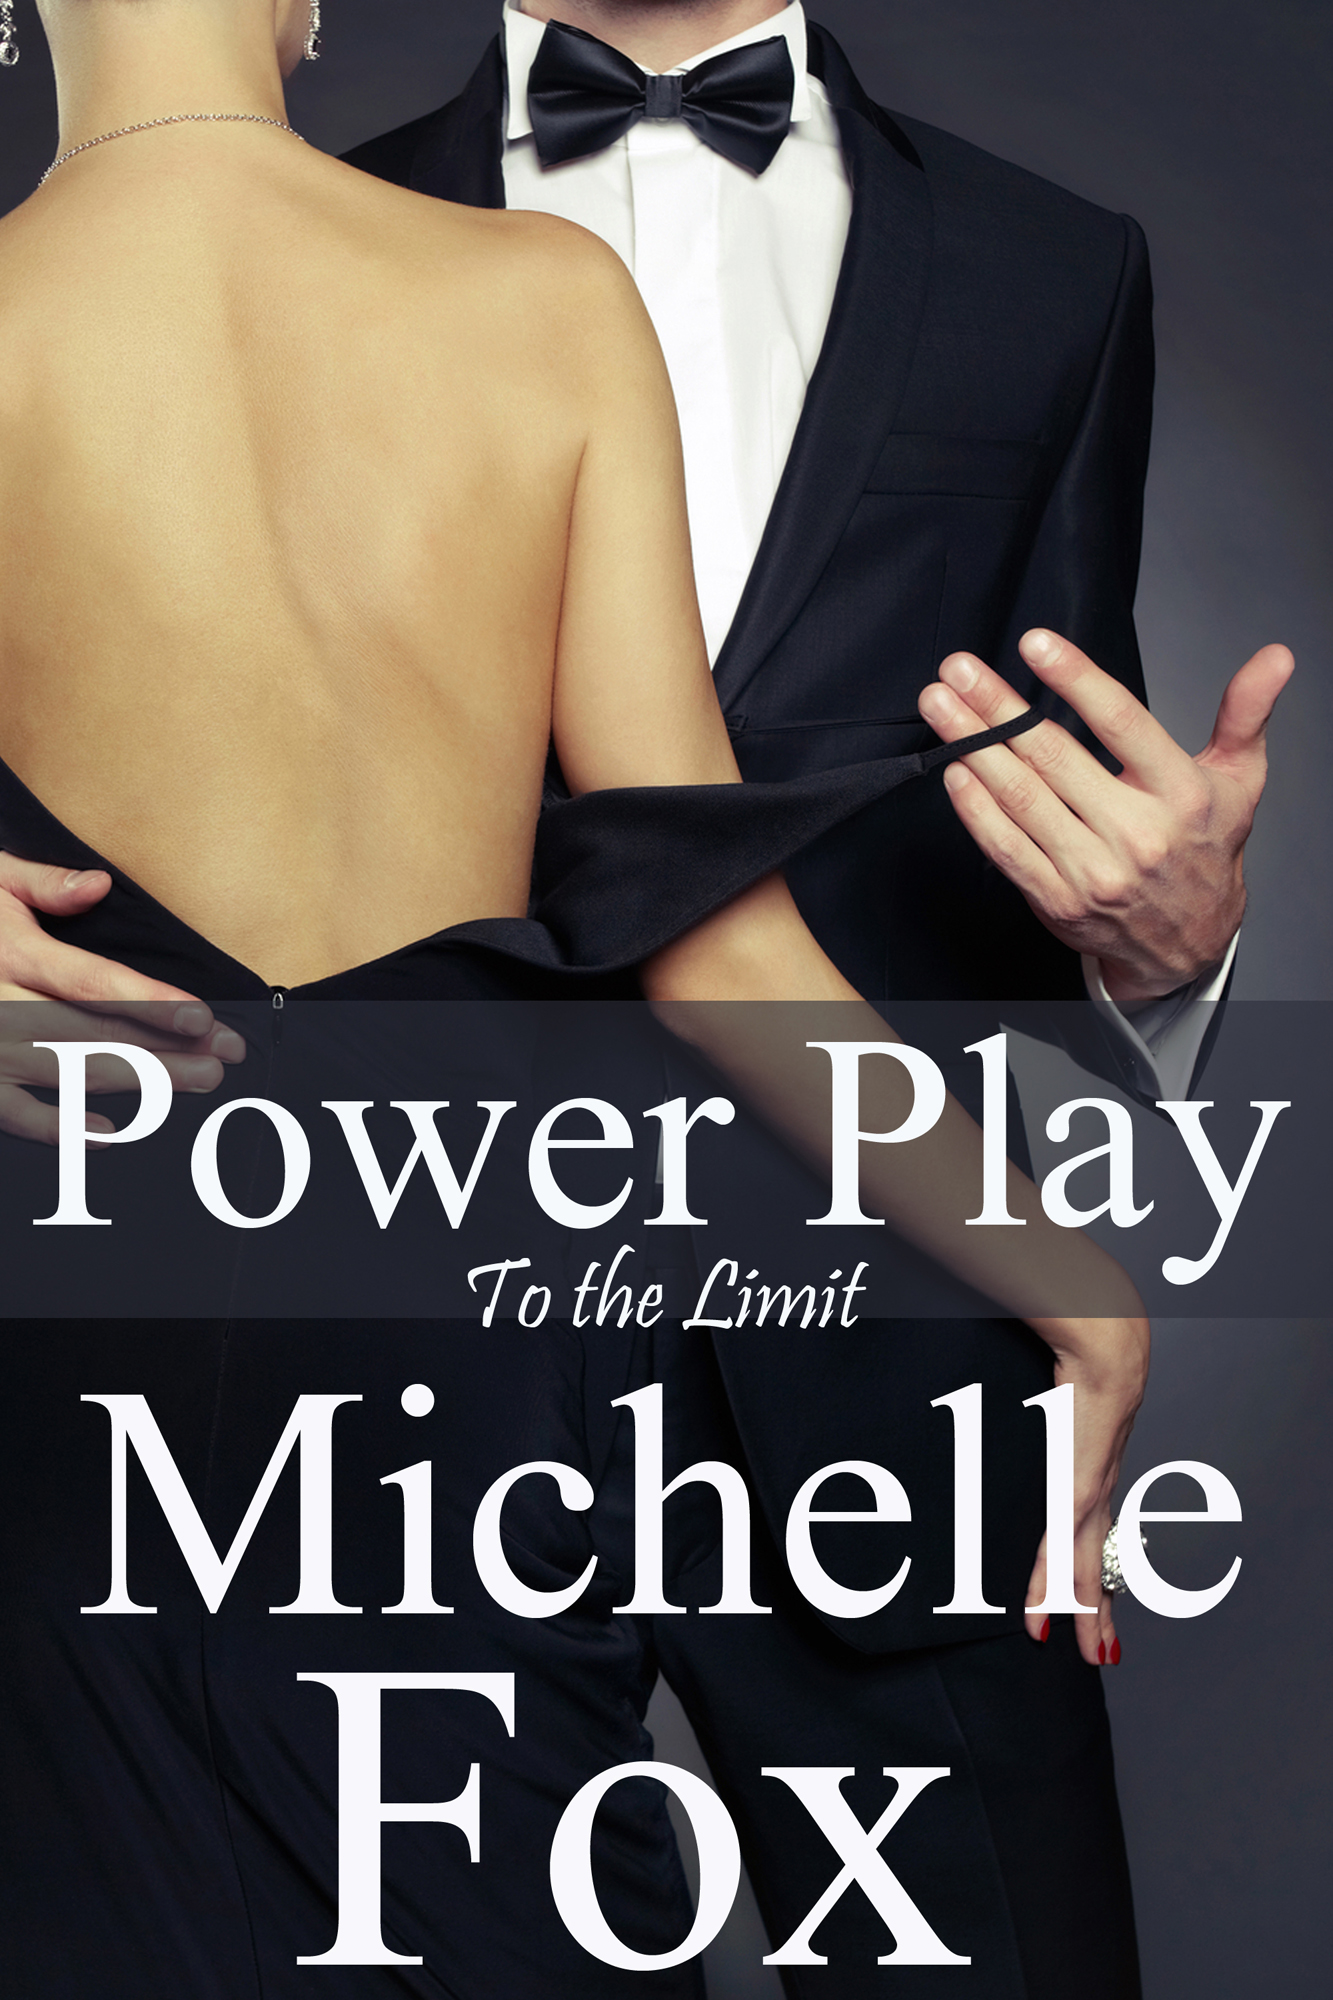 Michelle Fox - To the Limit (Similar to Fifty Shades of Grey) Spanking Stories Dominance Submission BDSM Erotica